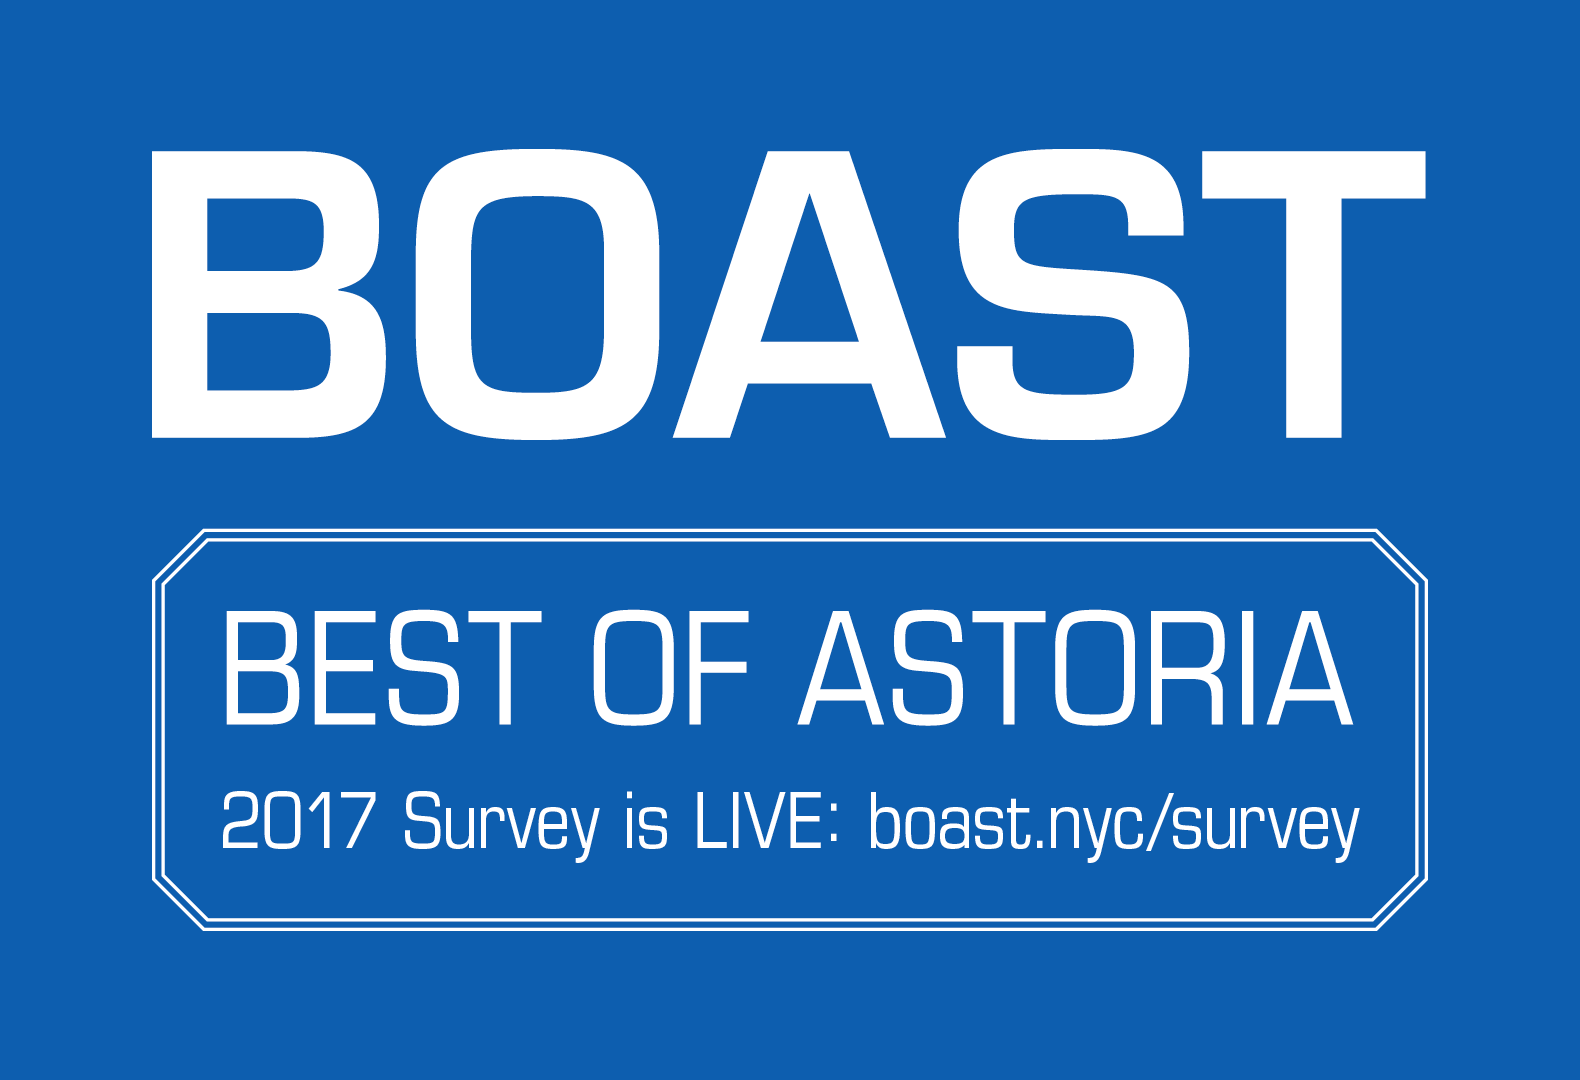 BOAST-2017-survey-url